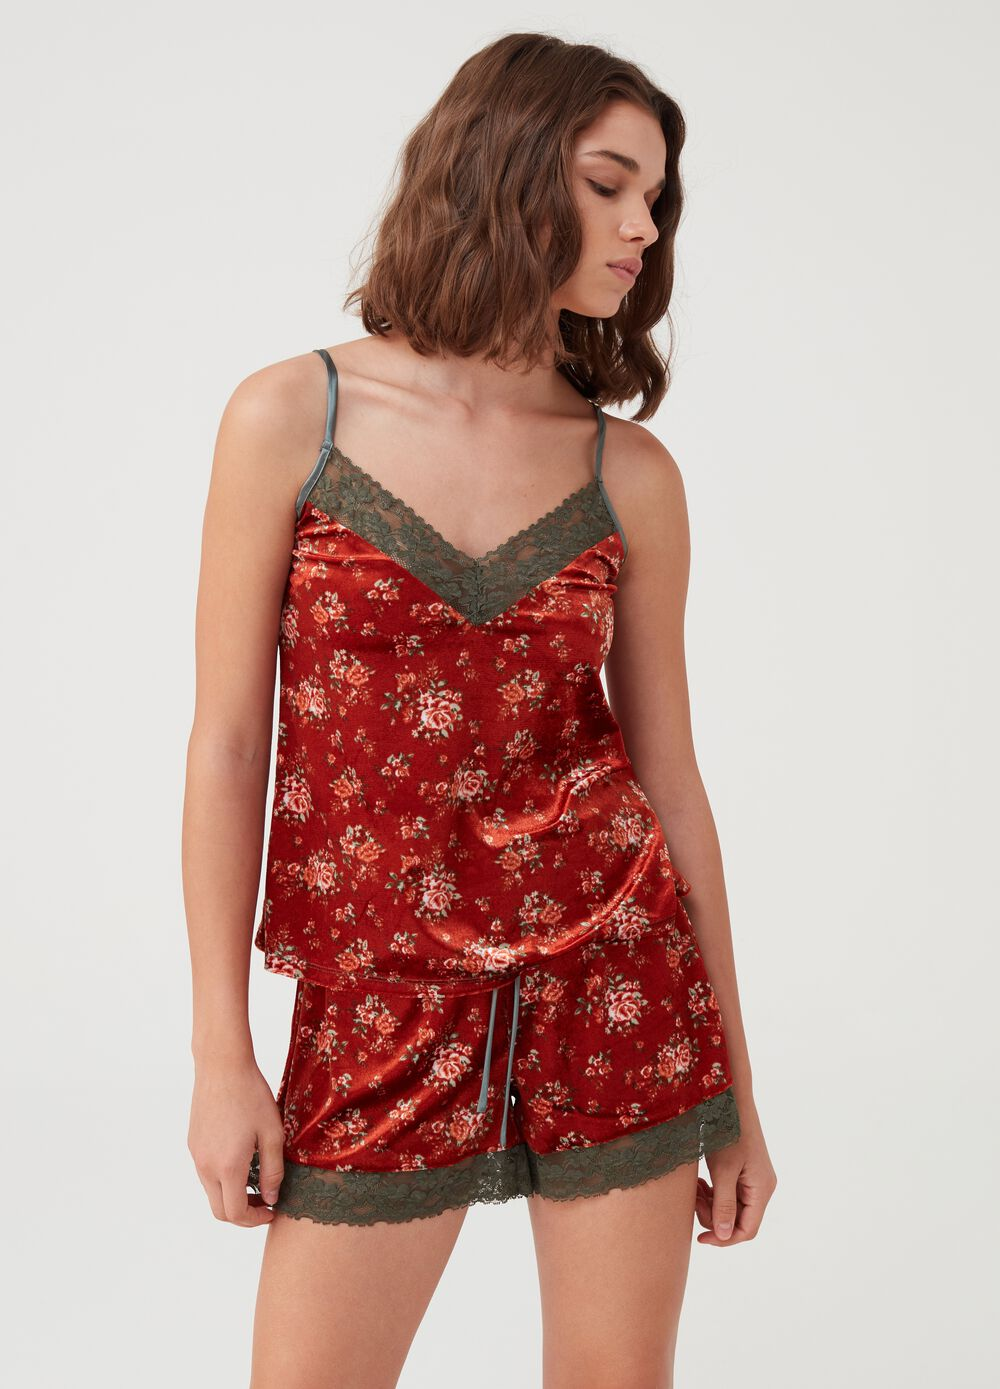 Velvet pyjama top with floral lace